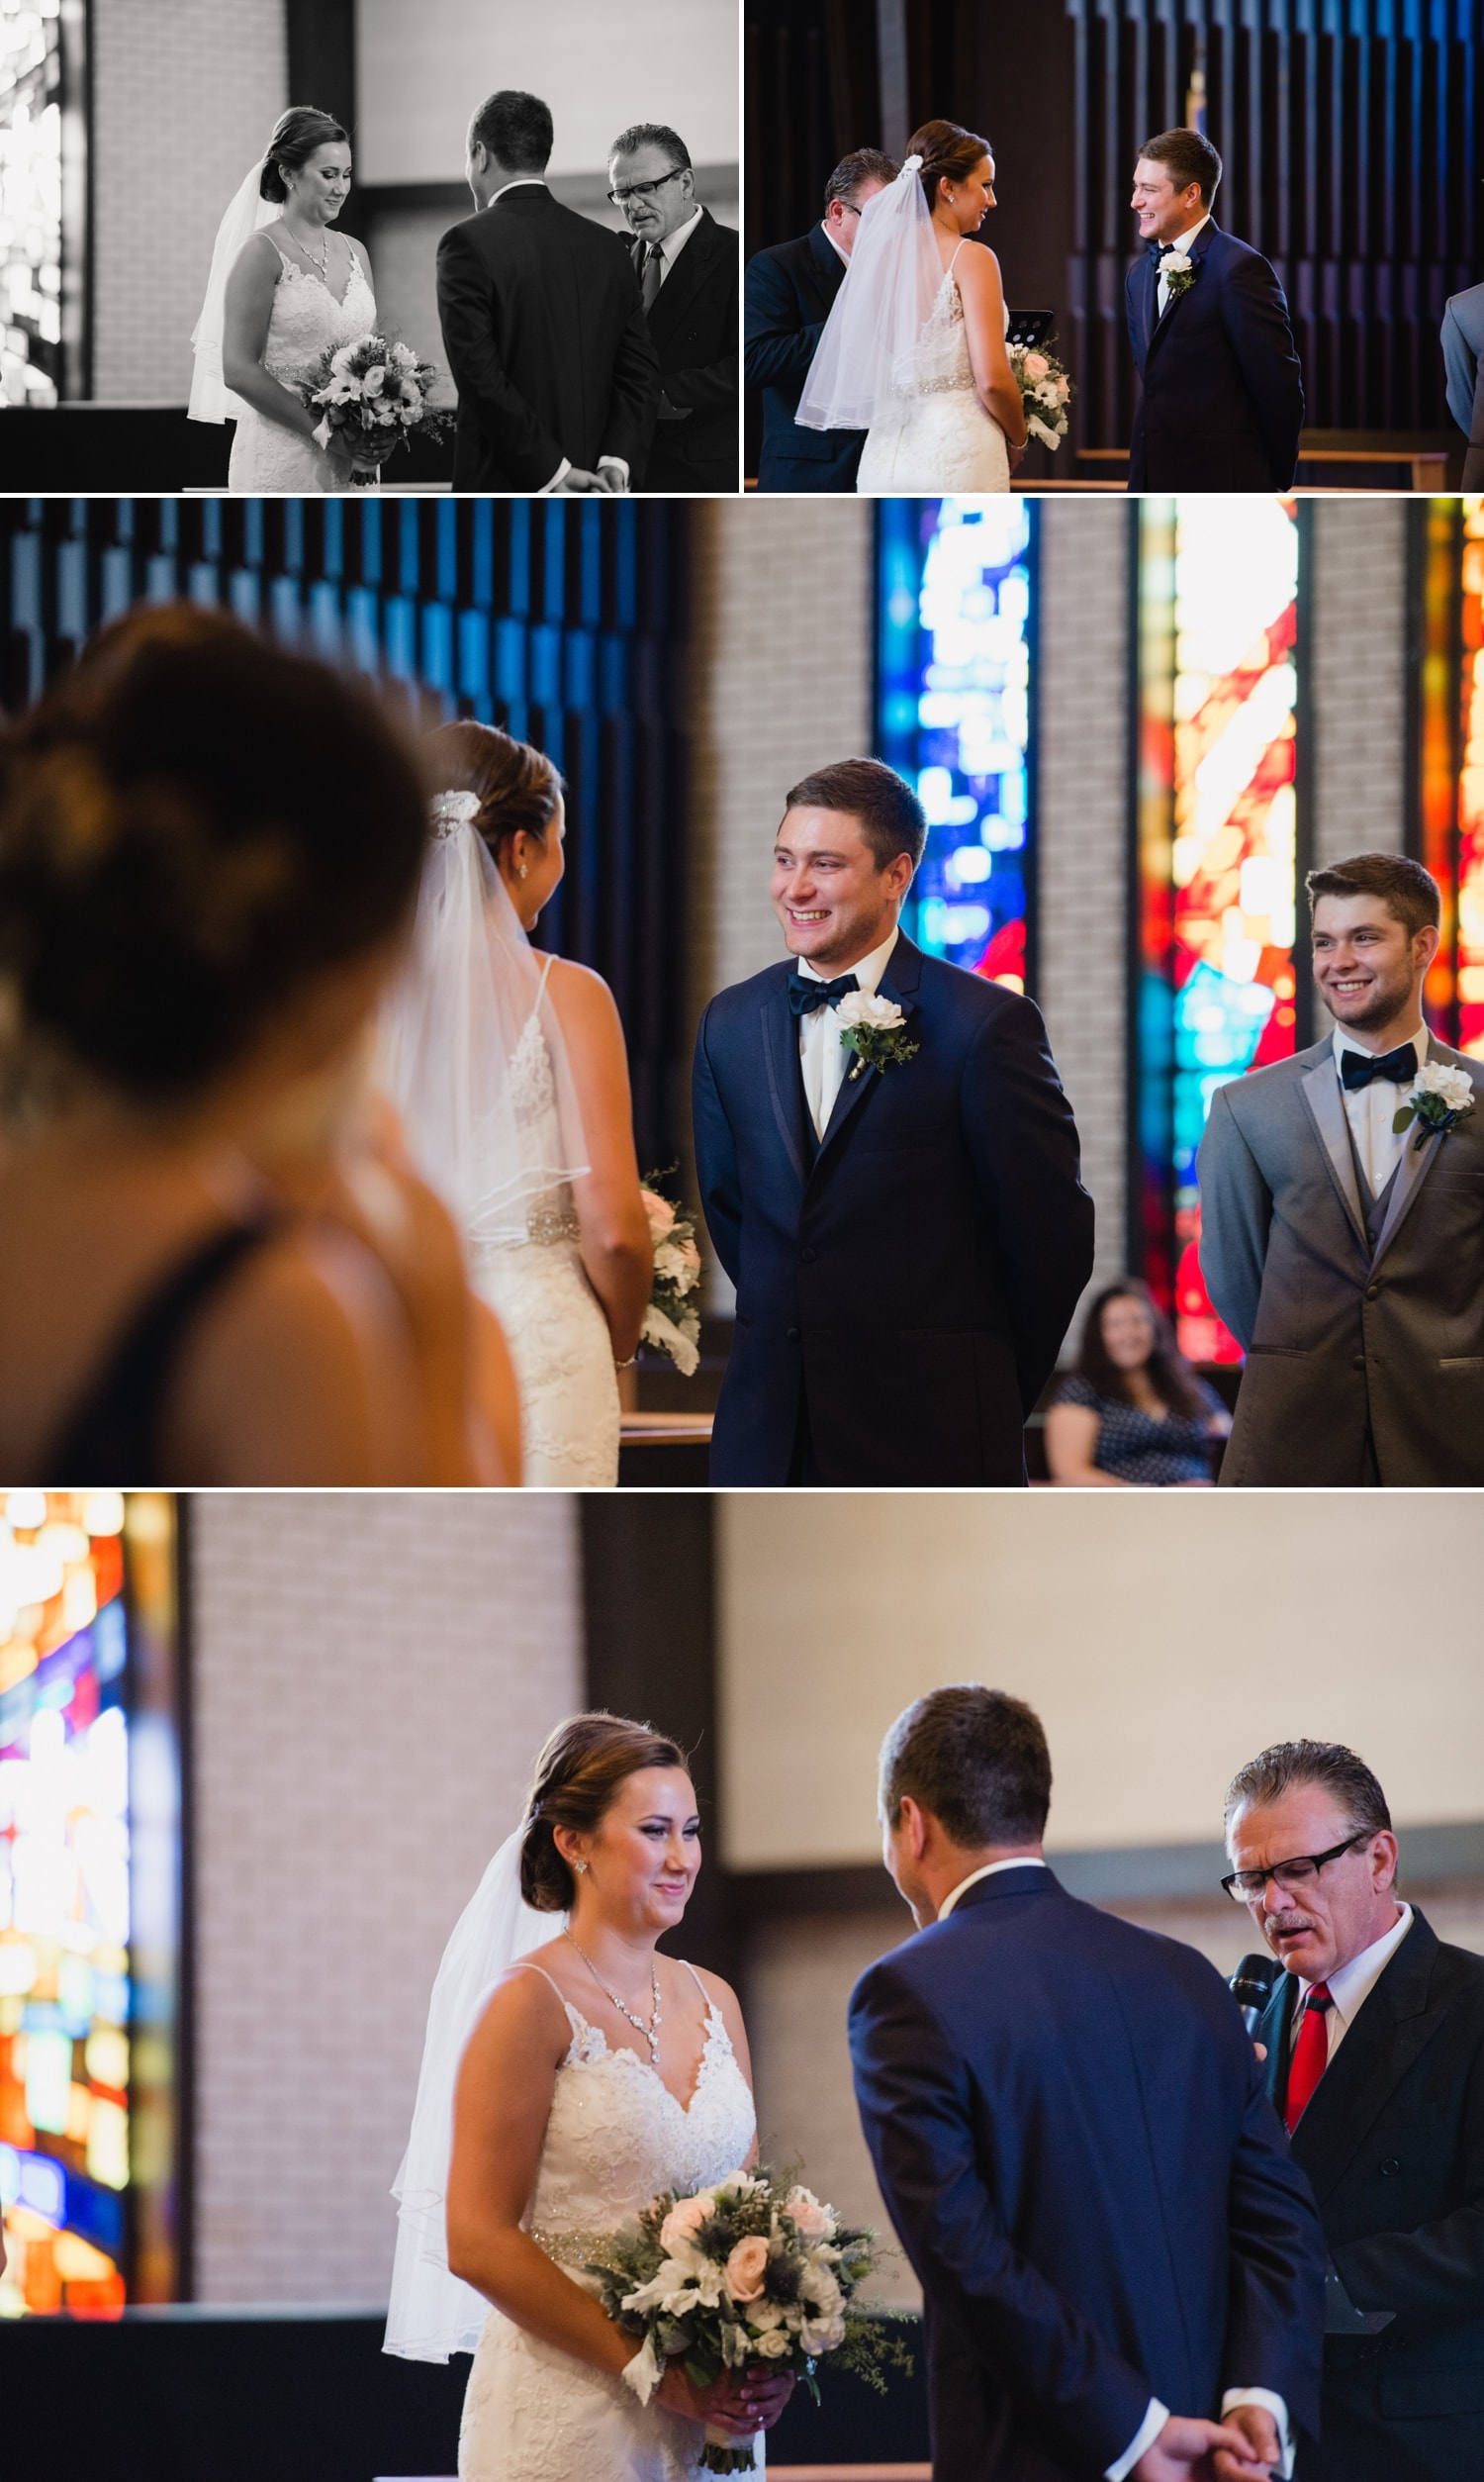 Heckman Wedding Blog 4.jpg